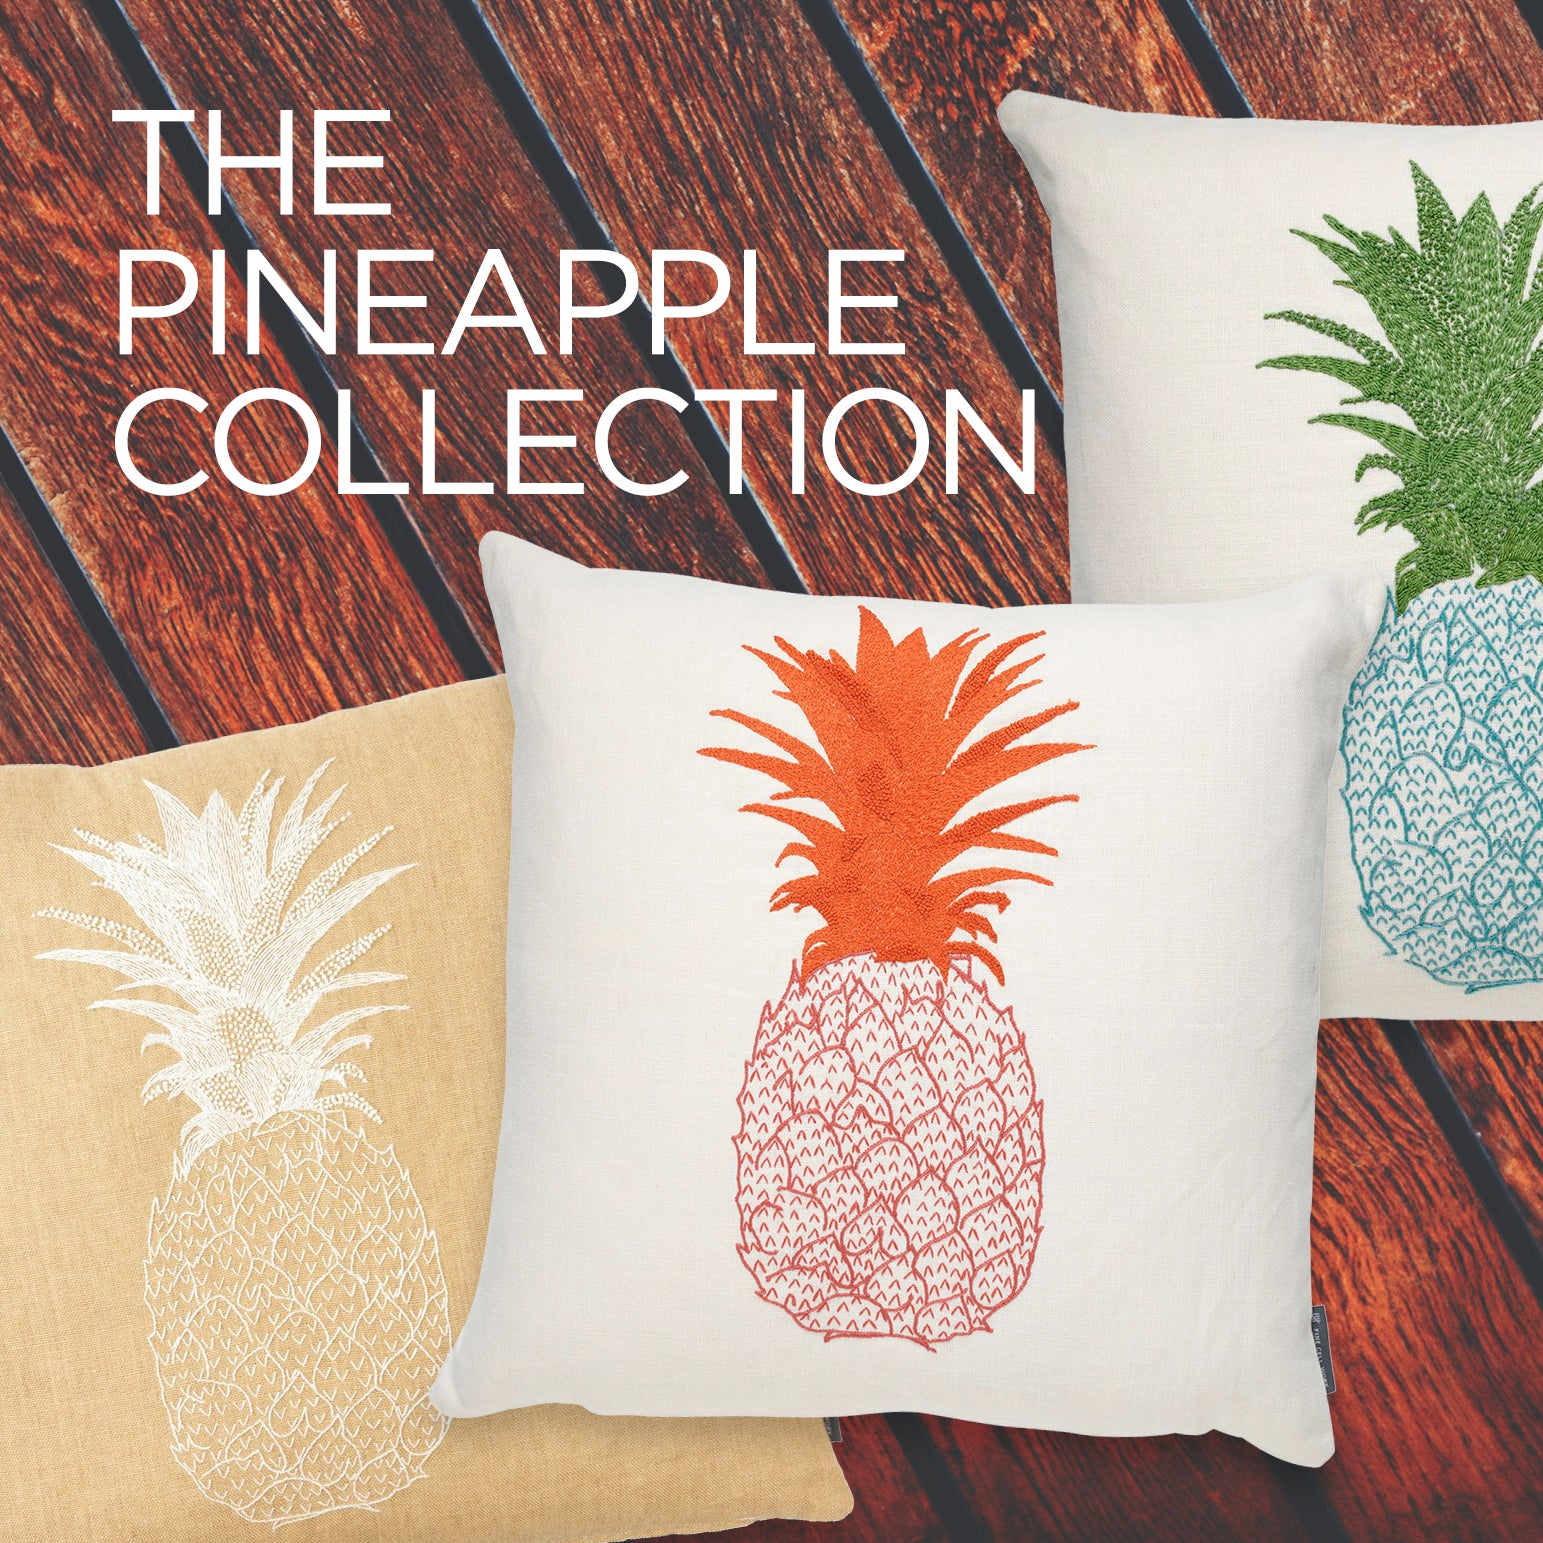 Pineapple Hand-Embroidered Cushion Blue and Green on Cream Linen Melissa Wyndham for Fine Cell Work